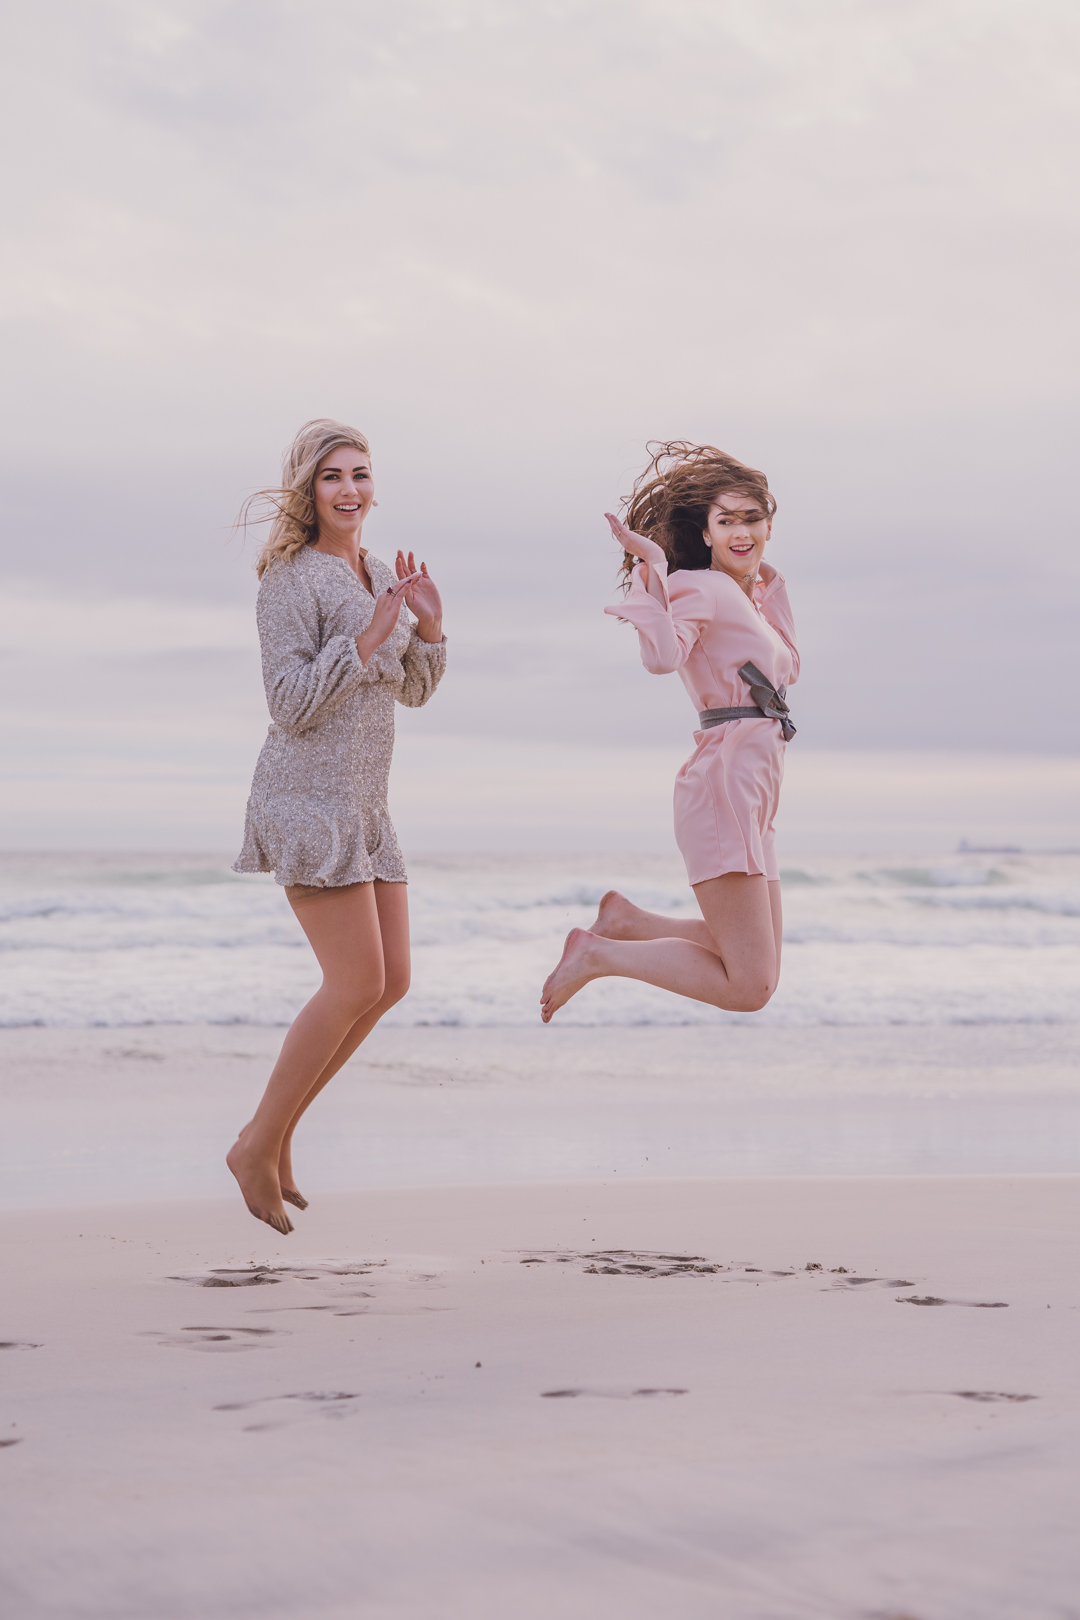 Cape Town Friends Beach_Seaside Photo session by Cape Image Co. (Small File)-3.jpg